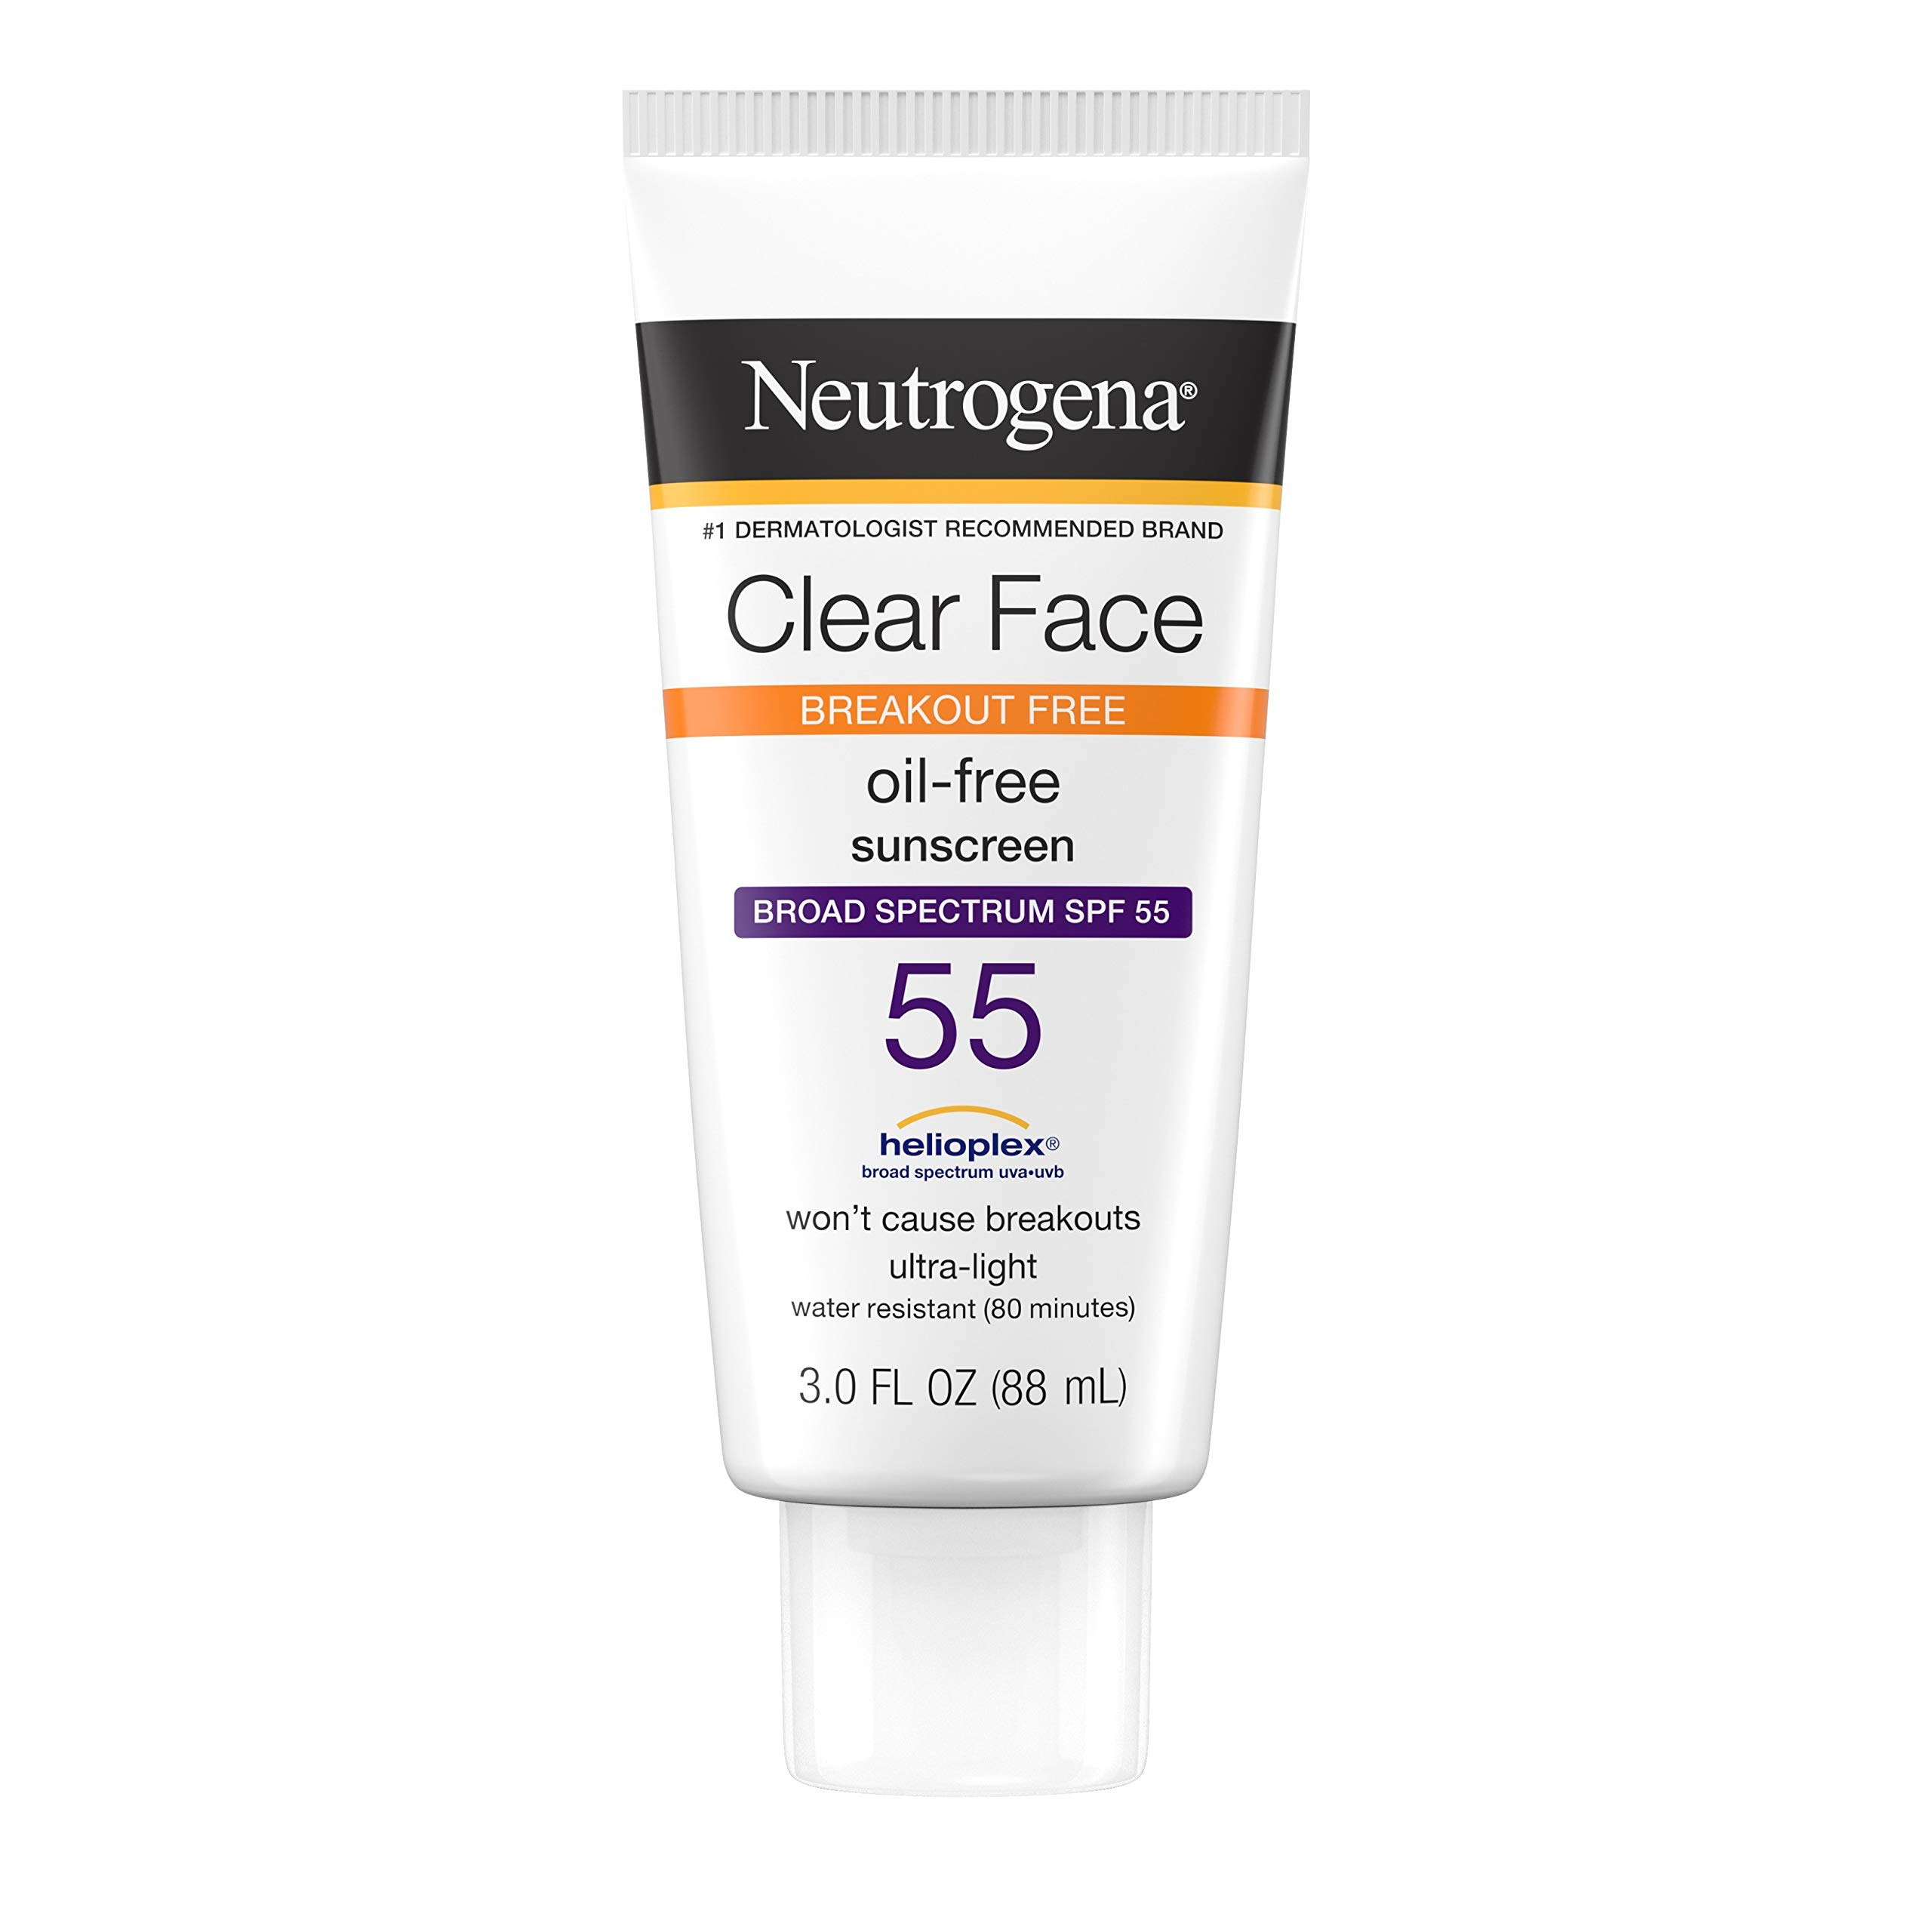 Neutrogena Sunscreen Acne Prone Spectrum Fragrance Free